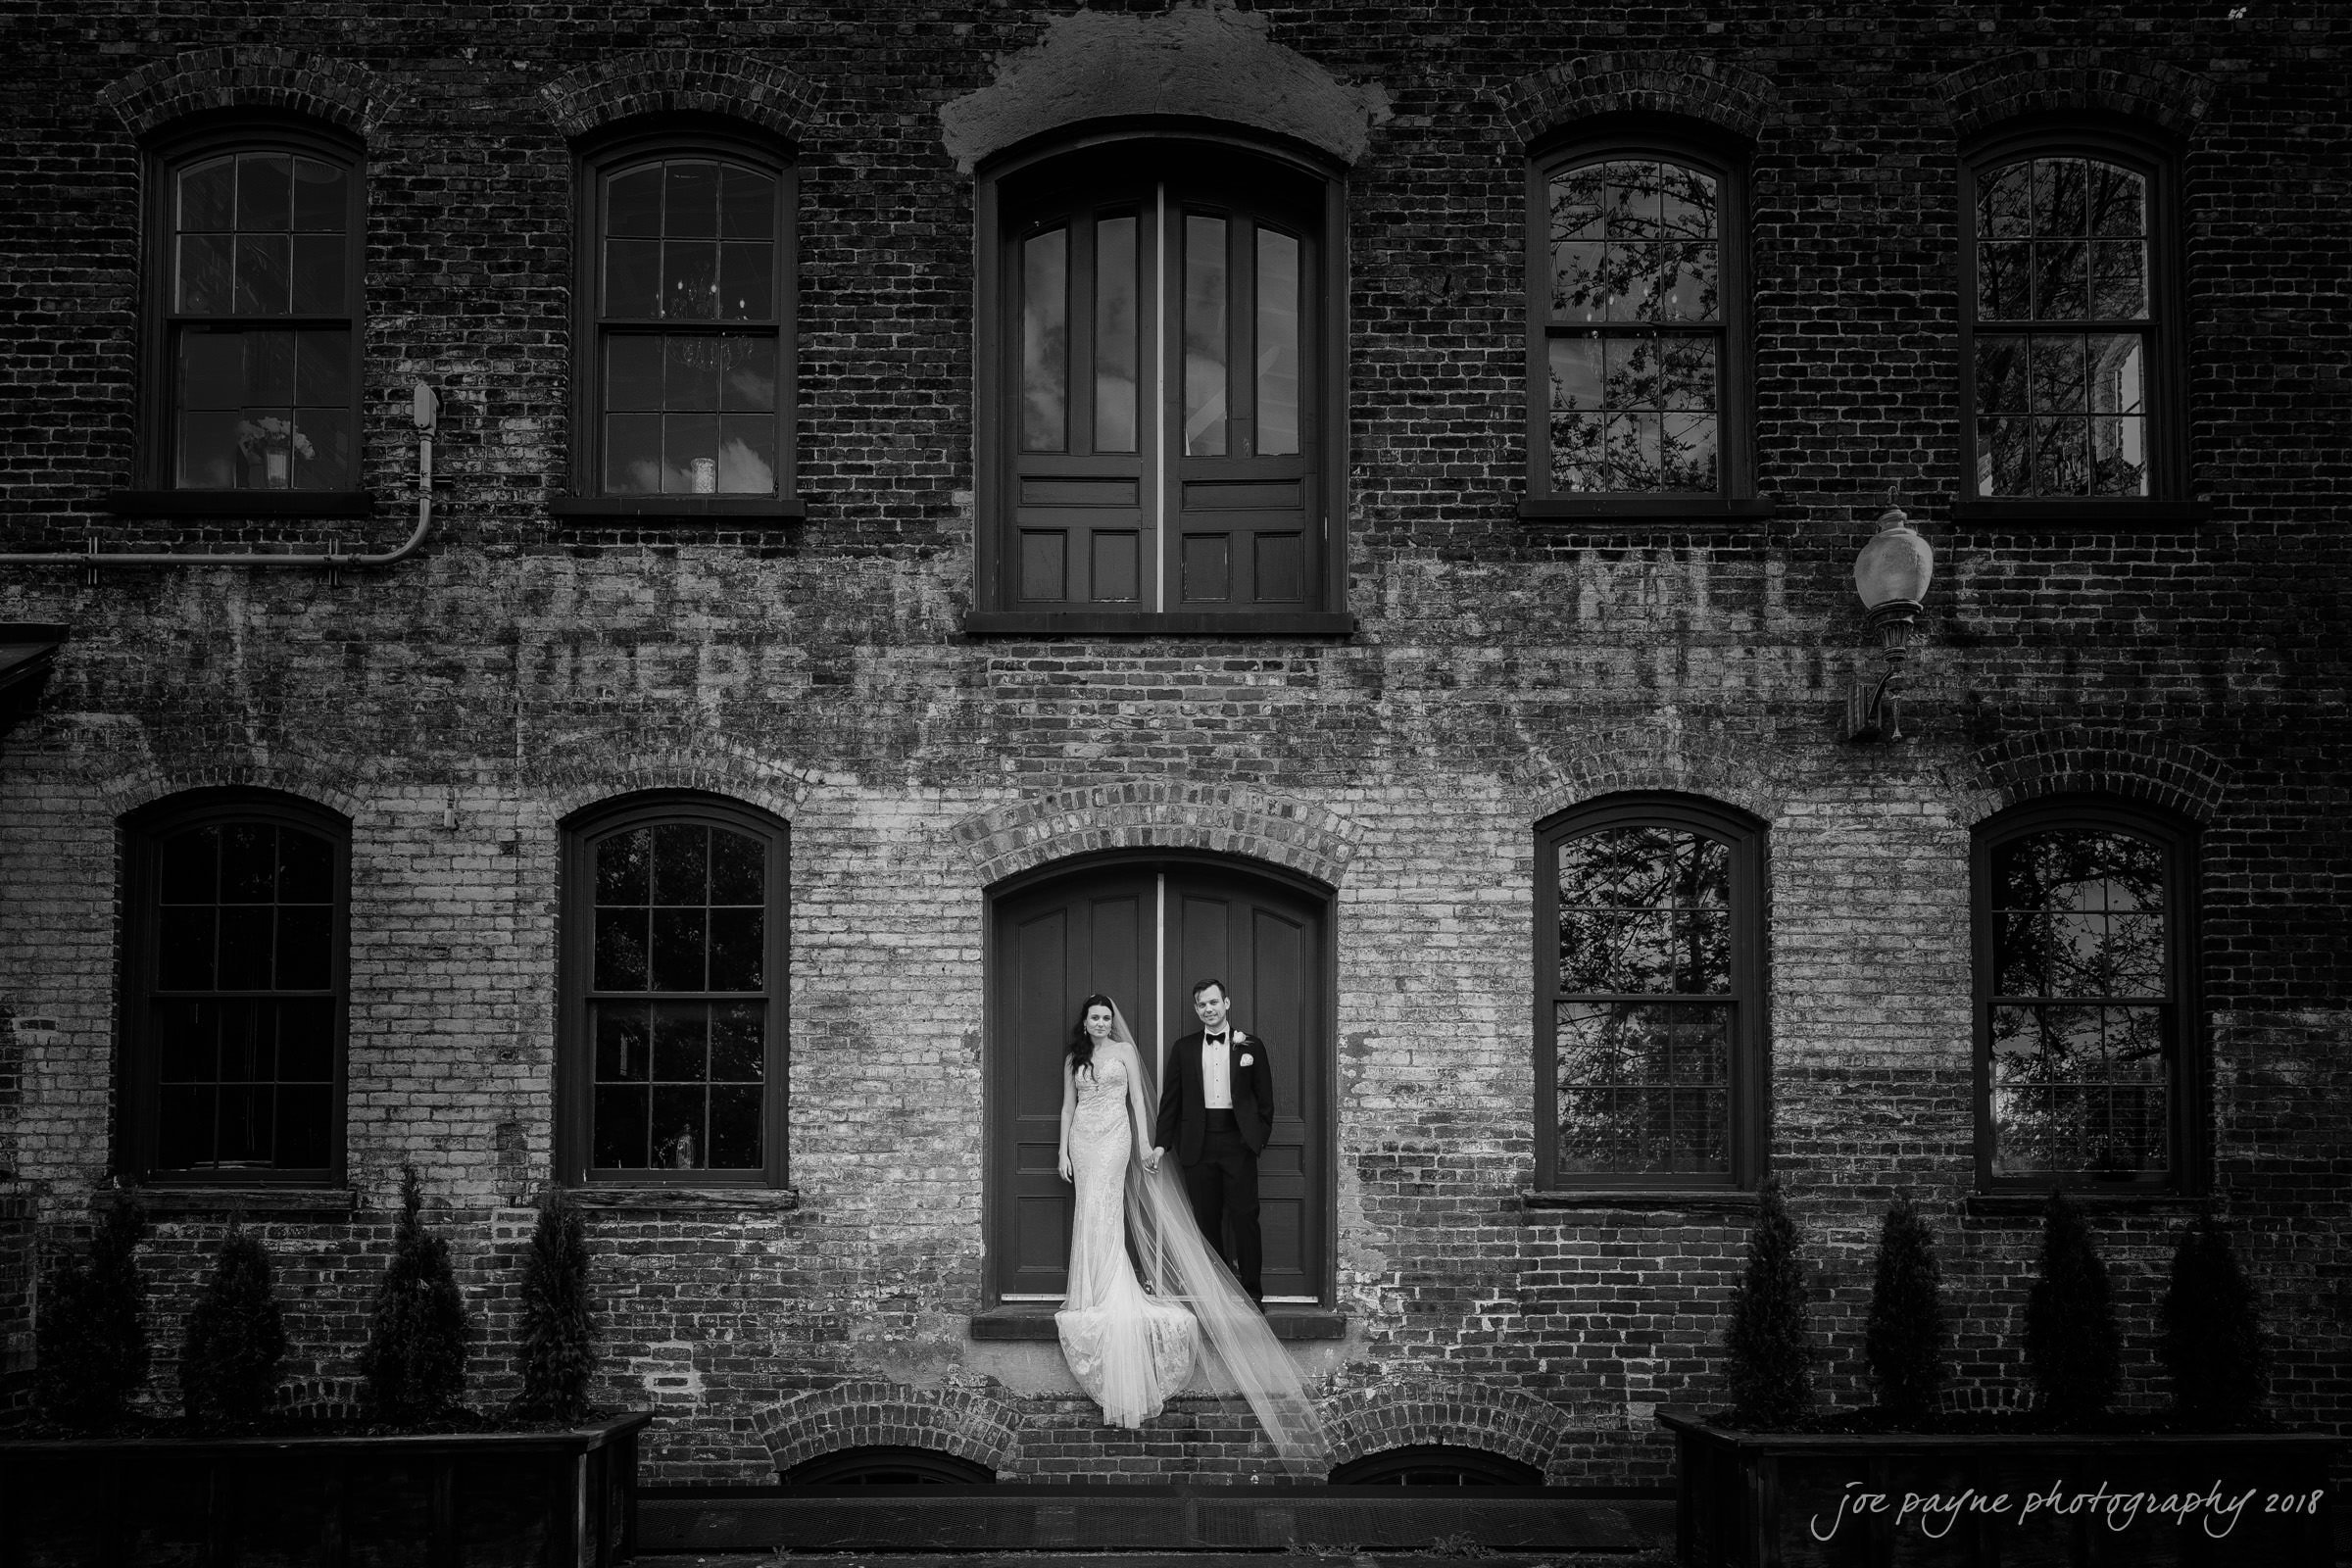 Melrose Knitting Mill B&W Couple Outside Vintage Look